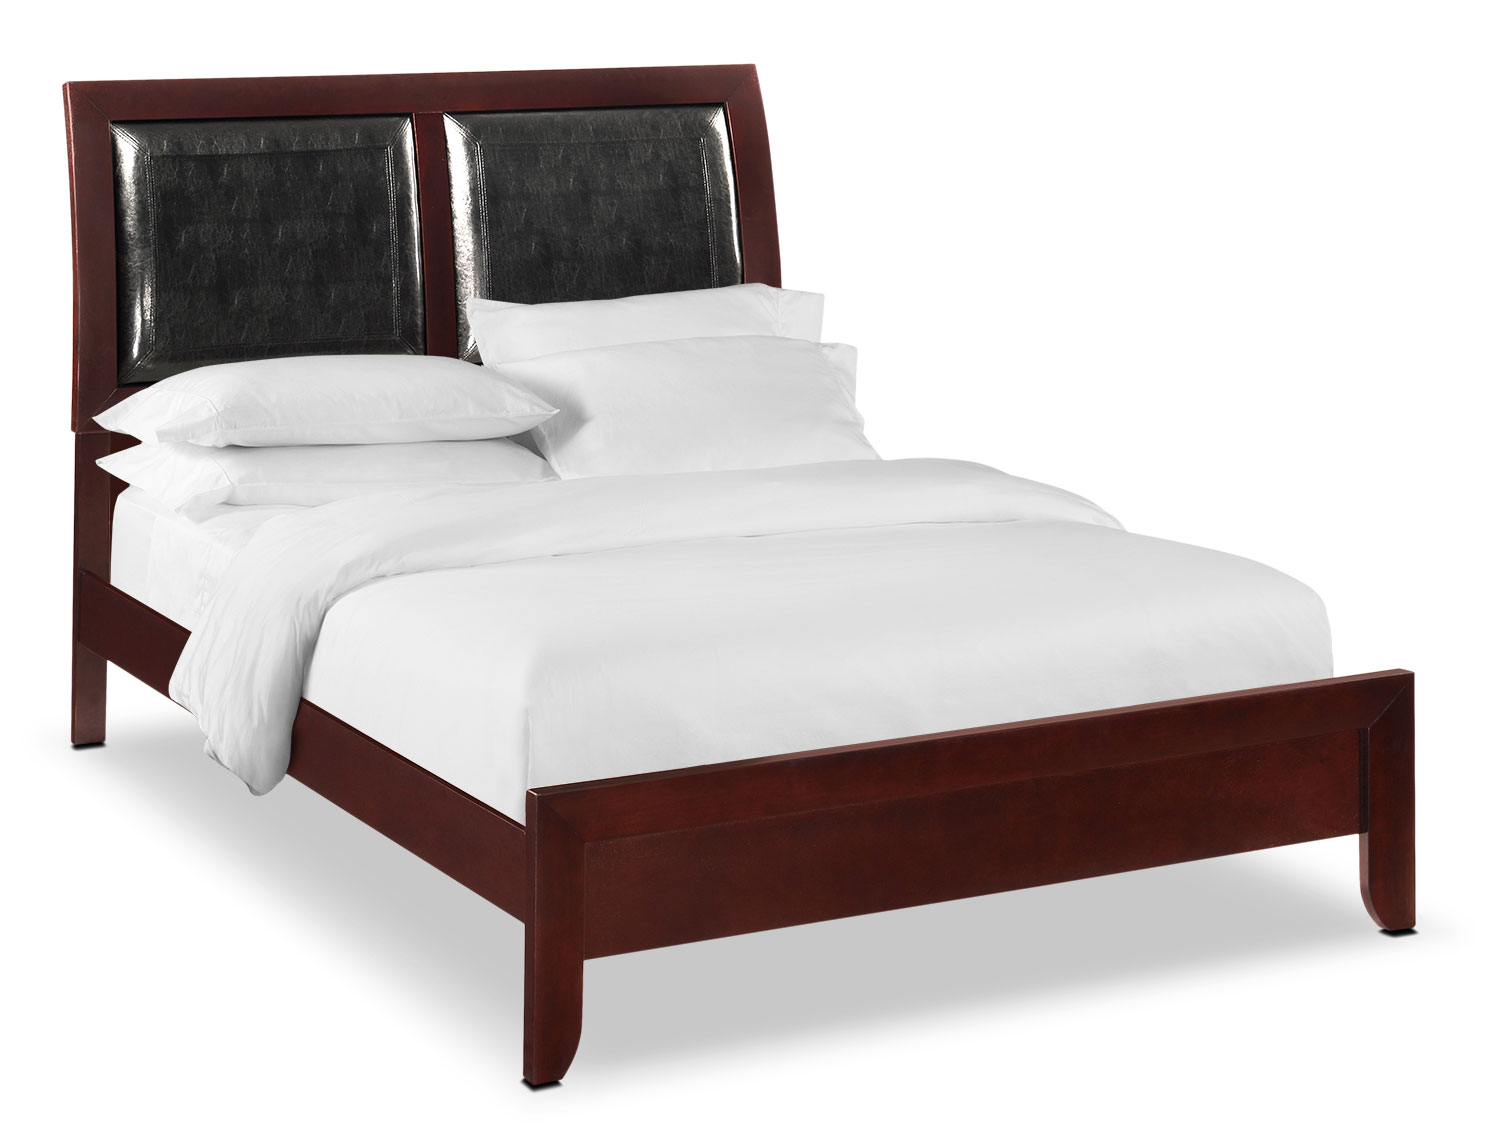 Bedroom Furniture - Braden King Upholstered Bed - Merlot